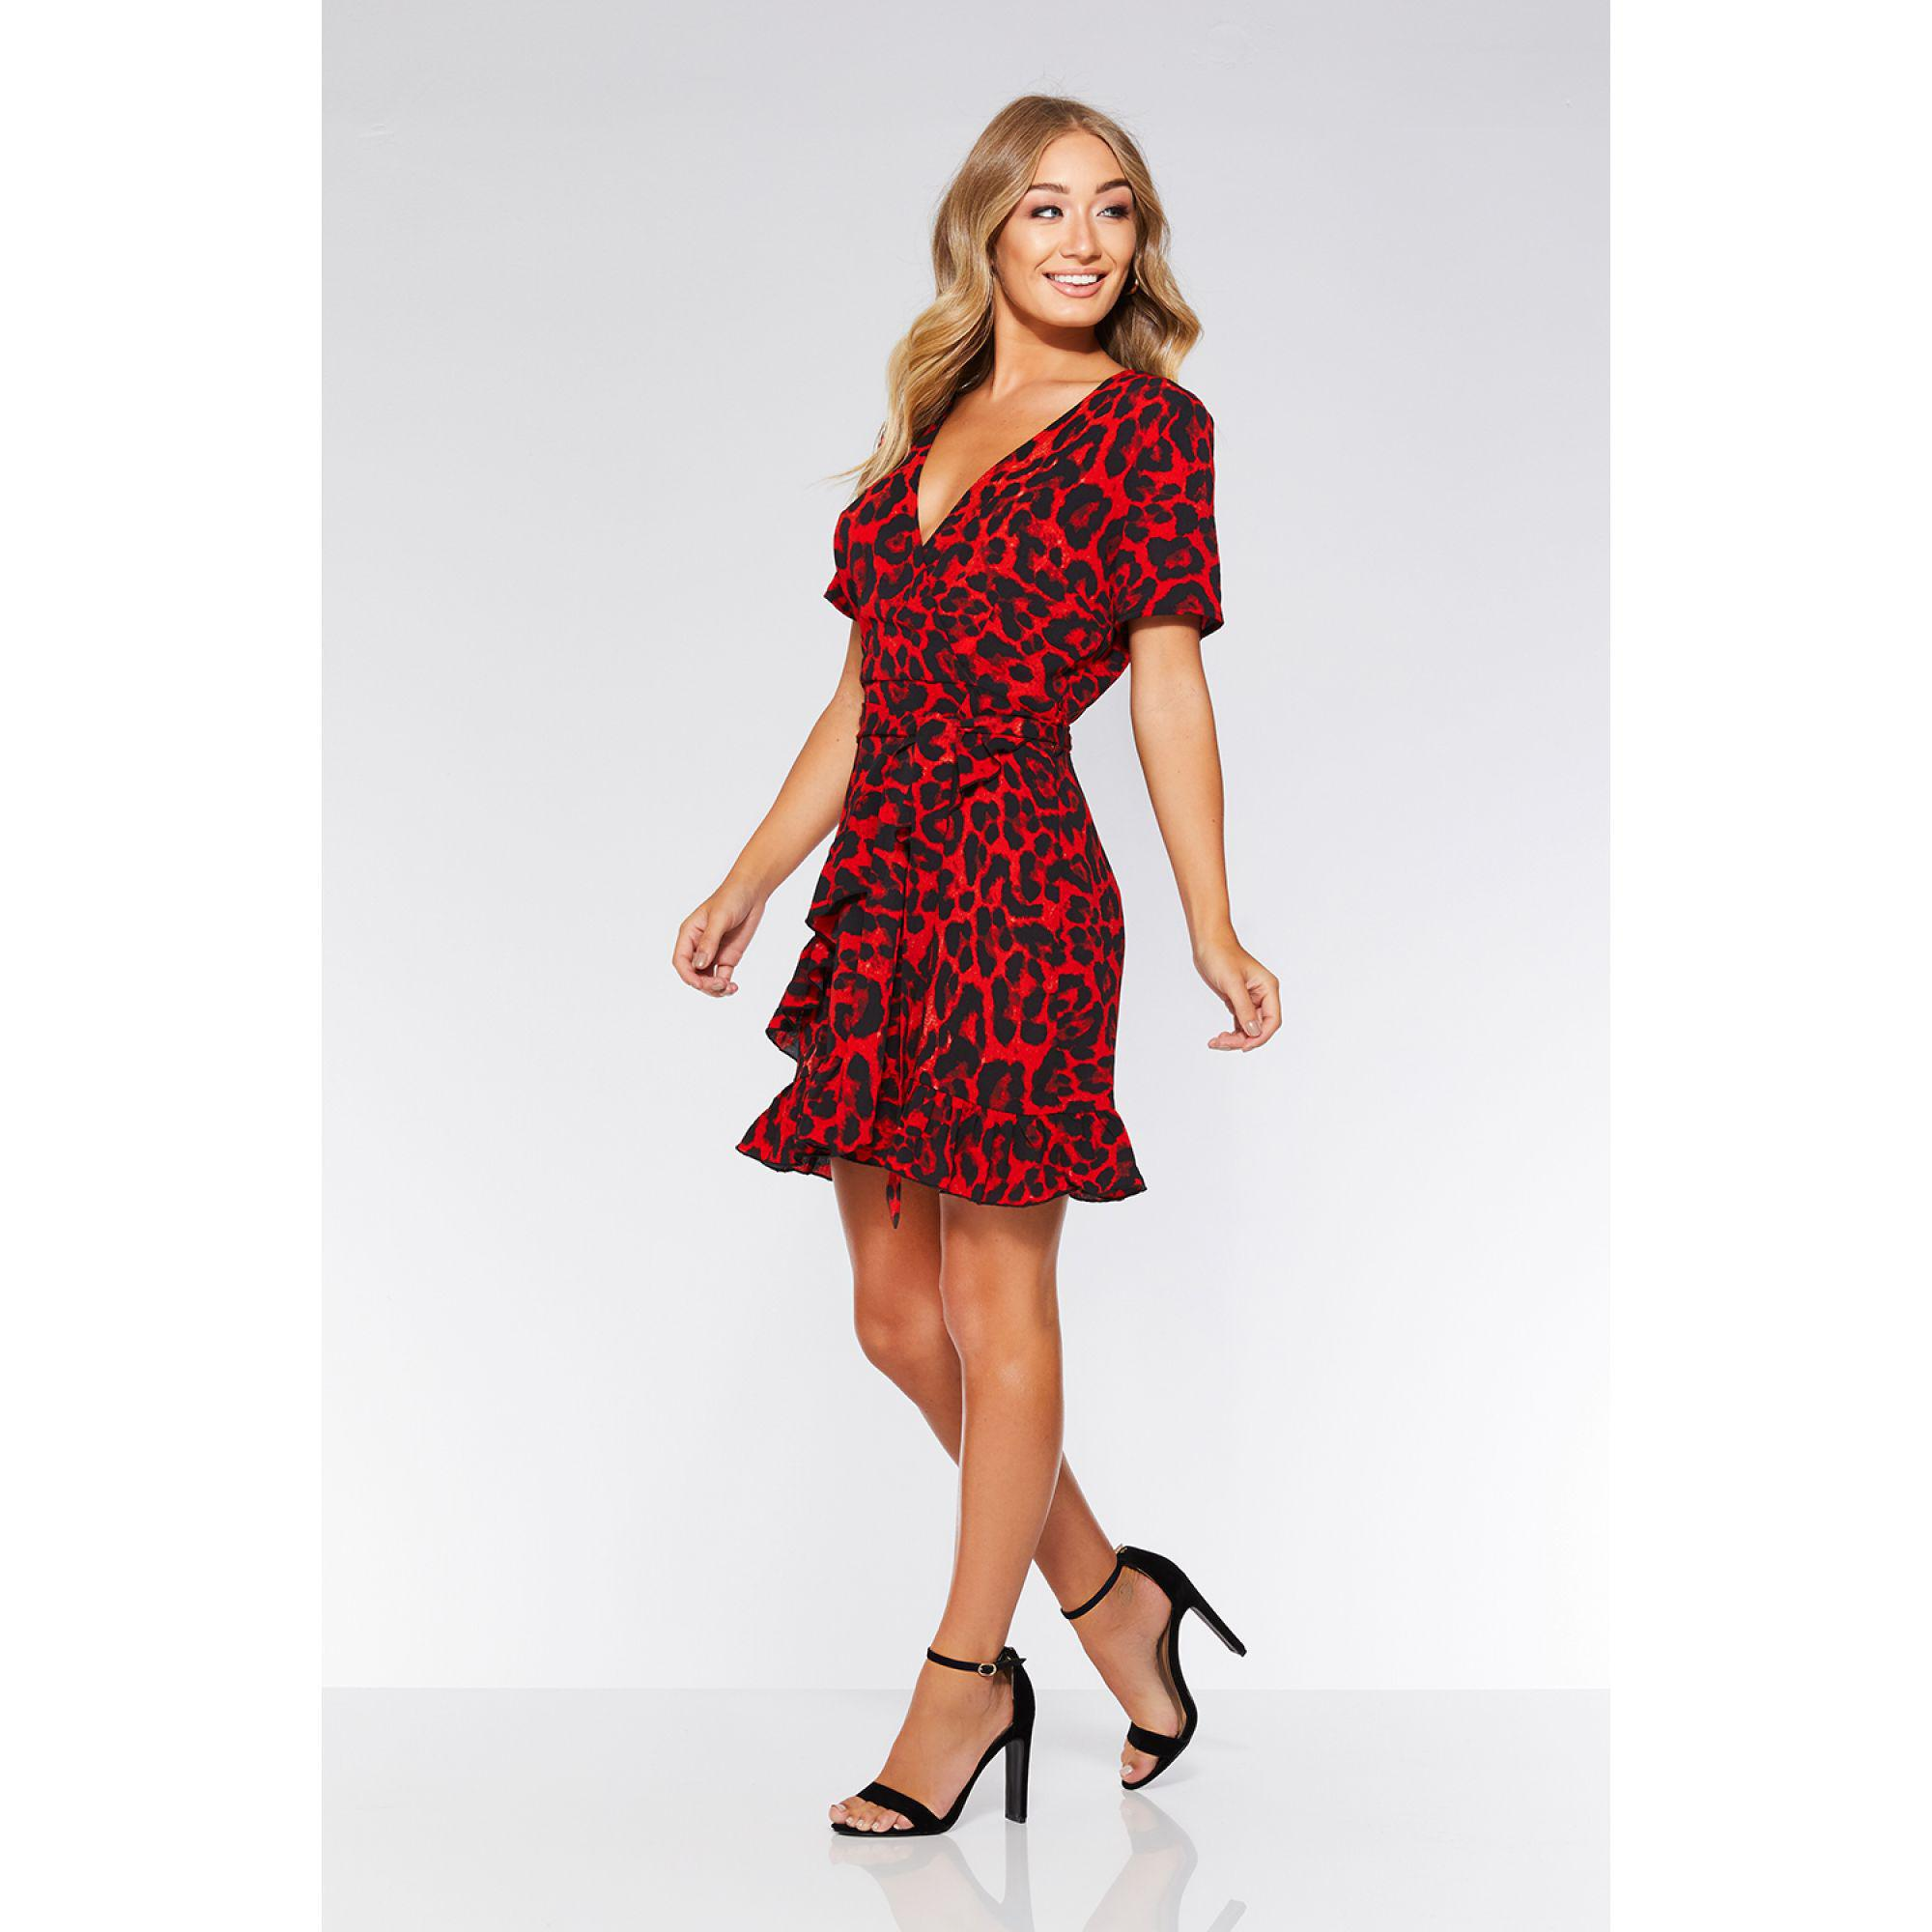 7193035cde3 Quiz Olivia s Red And Black Leopard Print Wrap Dress in Red - Lyst